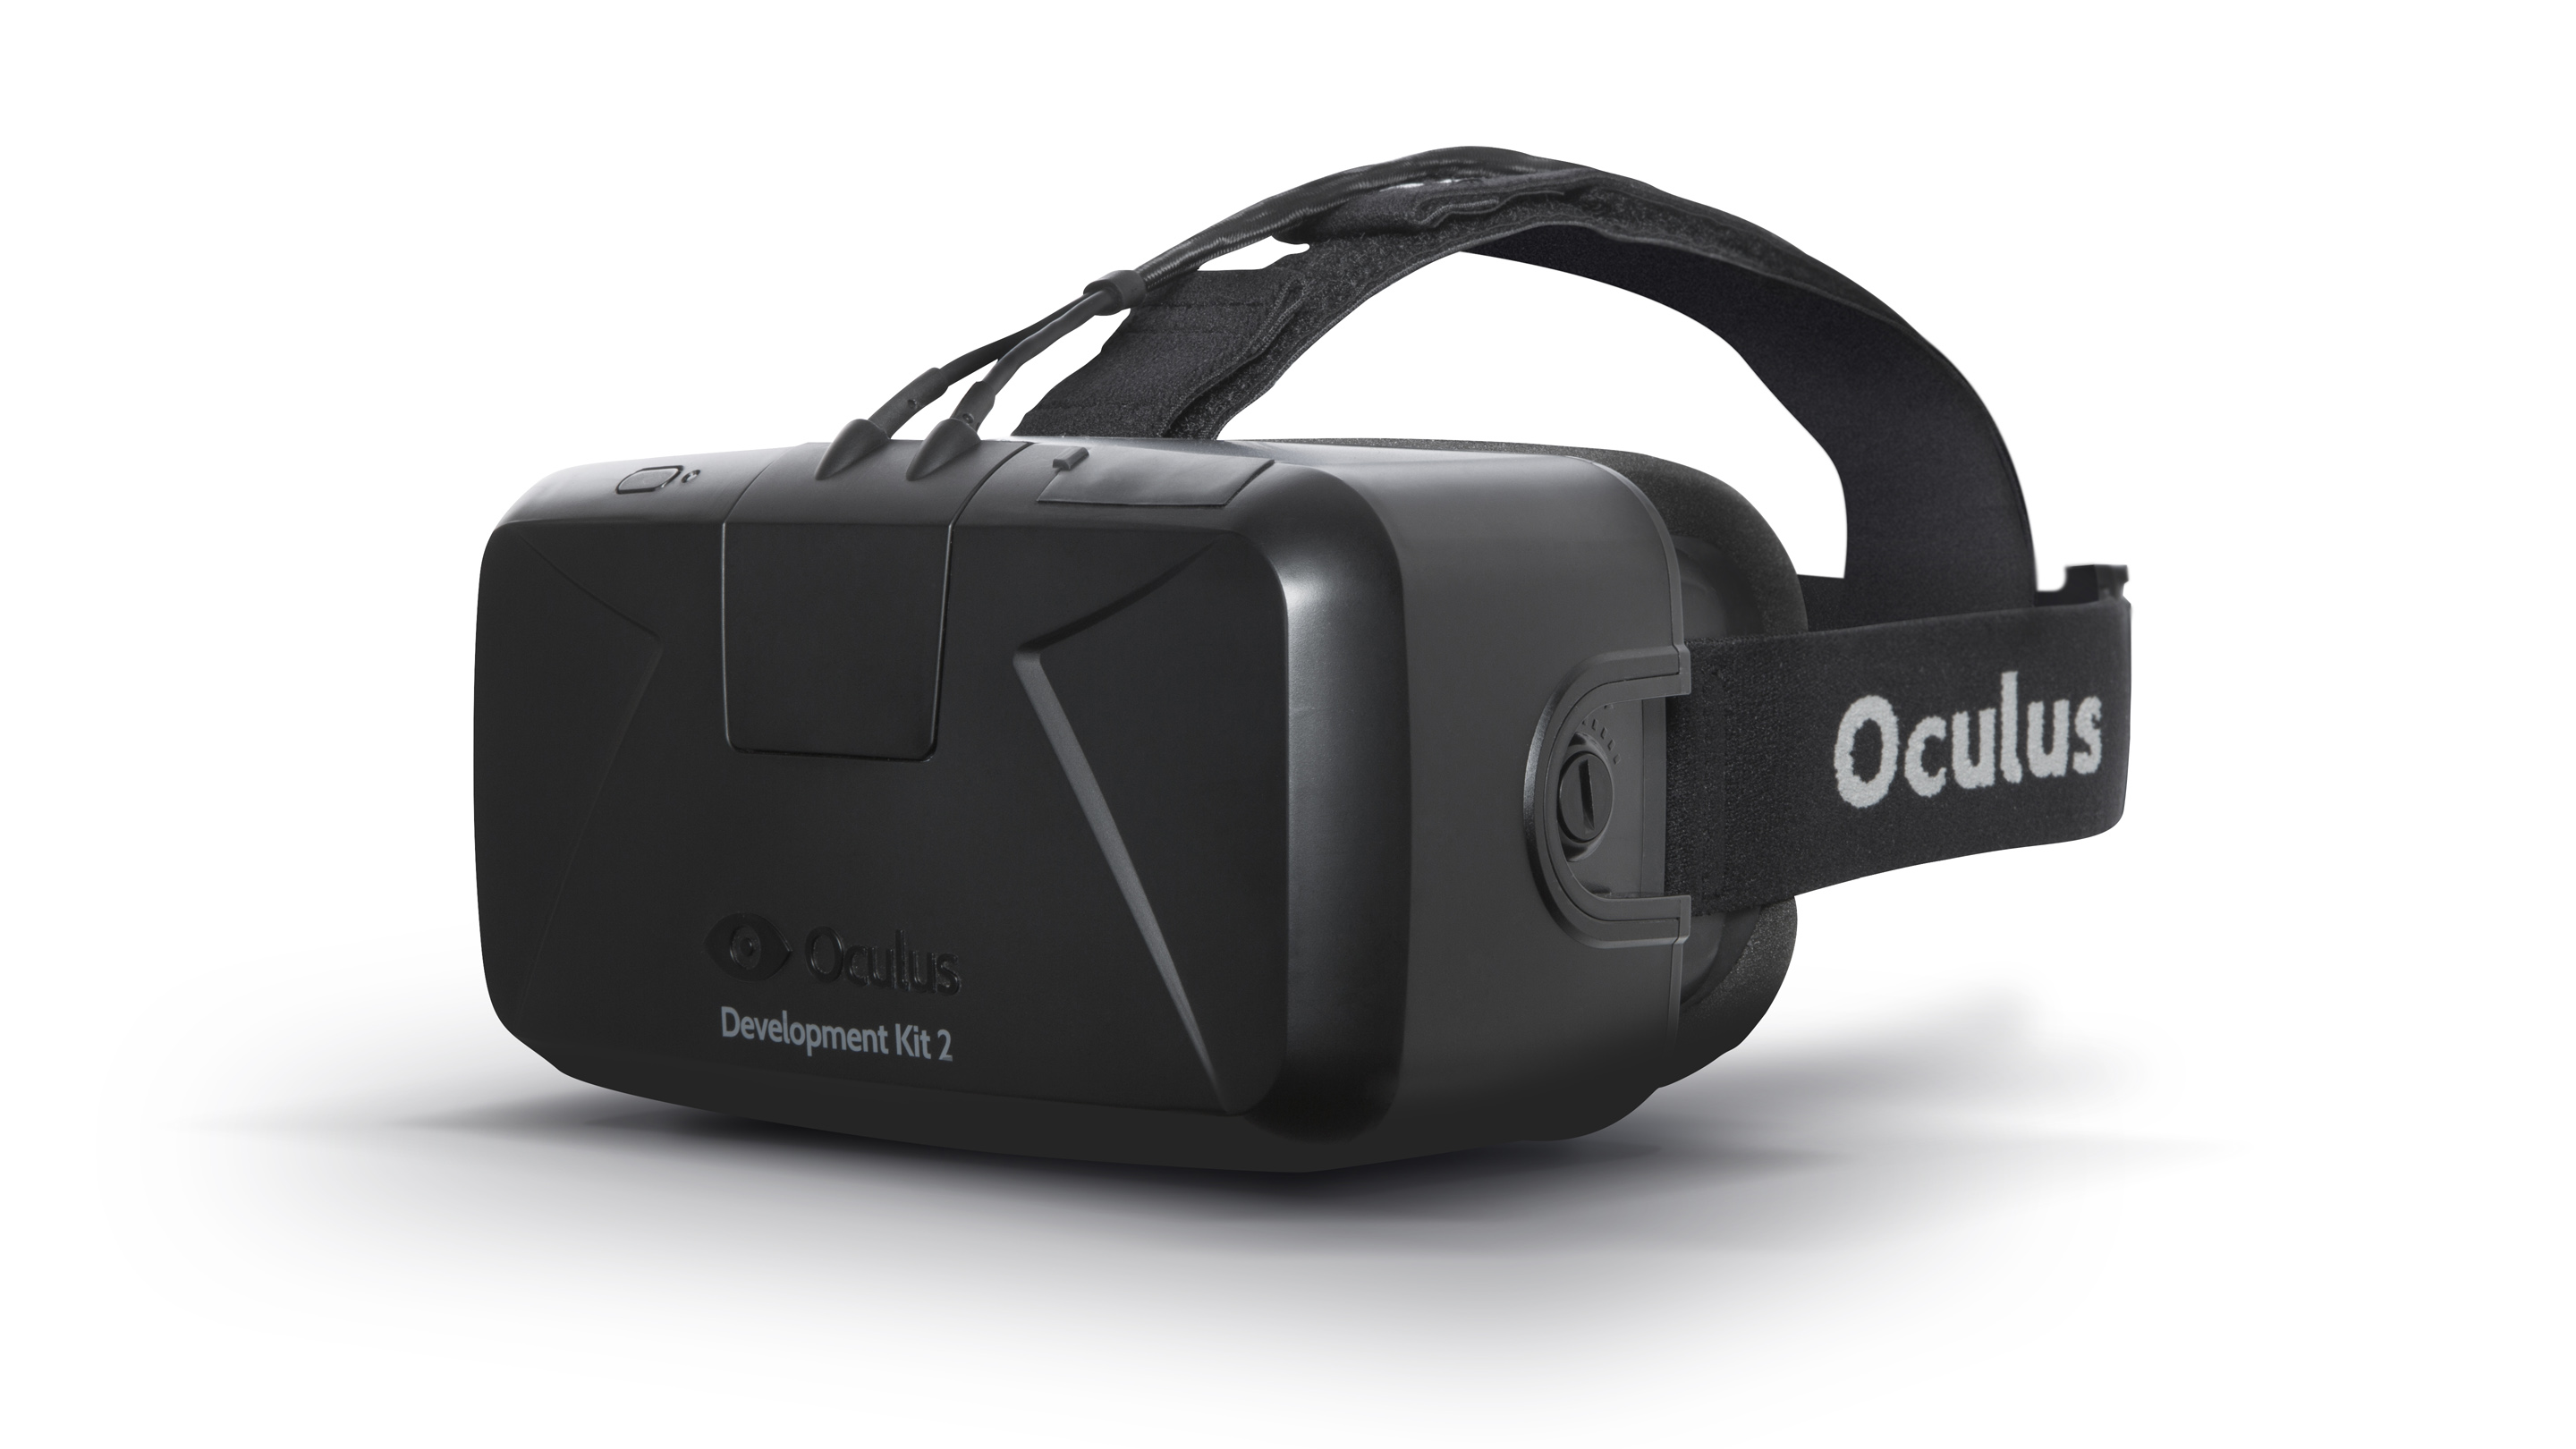 Facebook to Pay $2B for Oculus